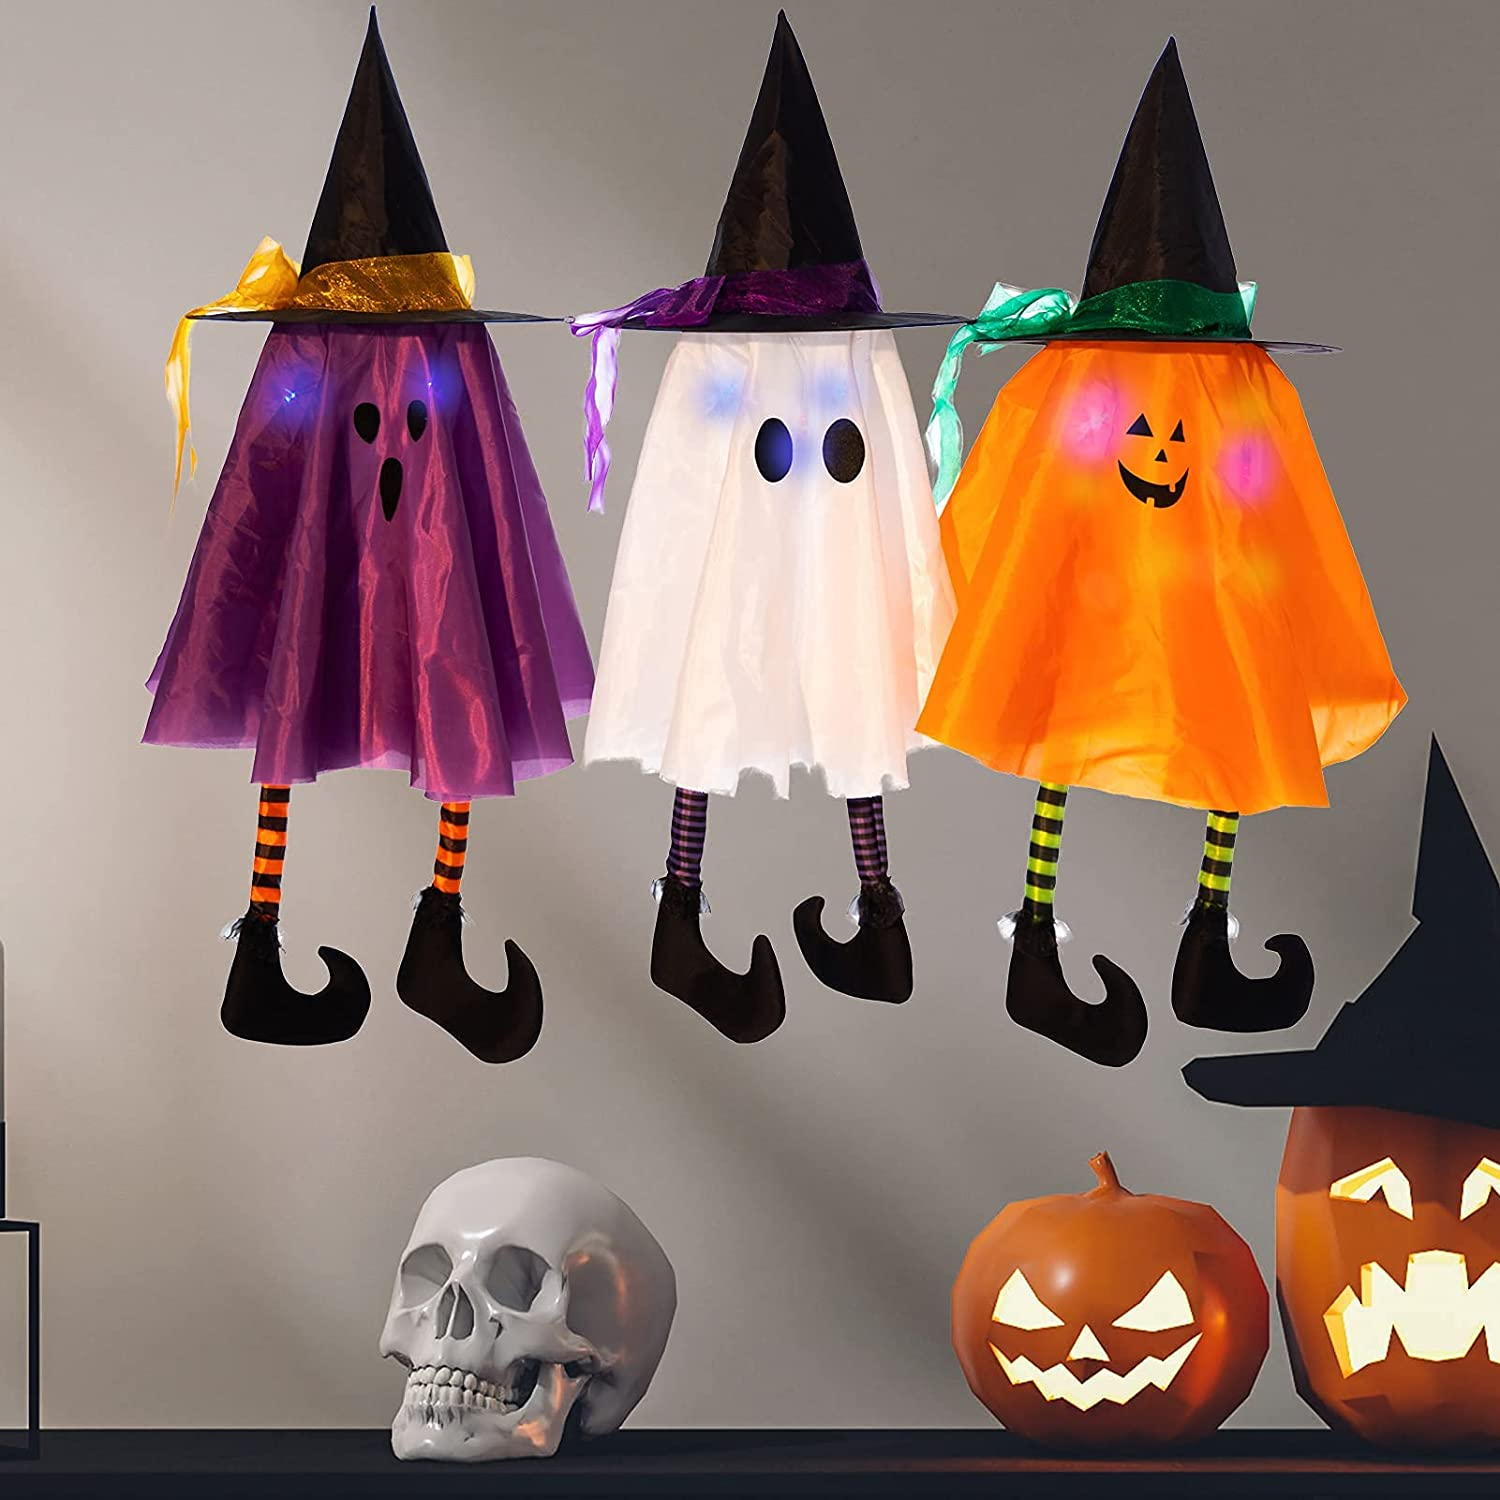 HOLLO STAR 3 Pack Halloween Decorations Cute Light Up Hanging Ghost with Witch Hats, Party Favors Holiday Prop Decor, Indoor Outdoor for Patio Garden Yard Decoration